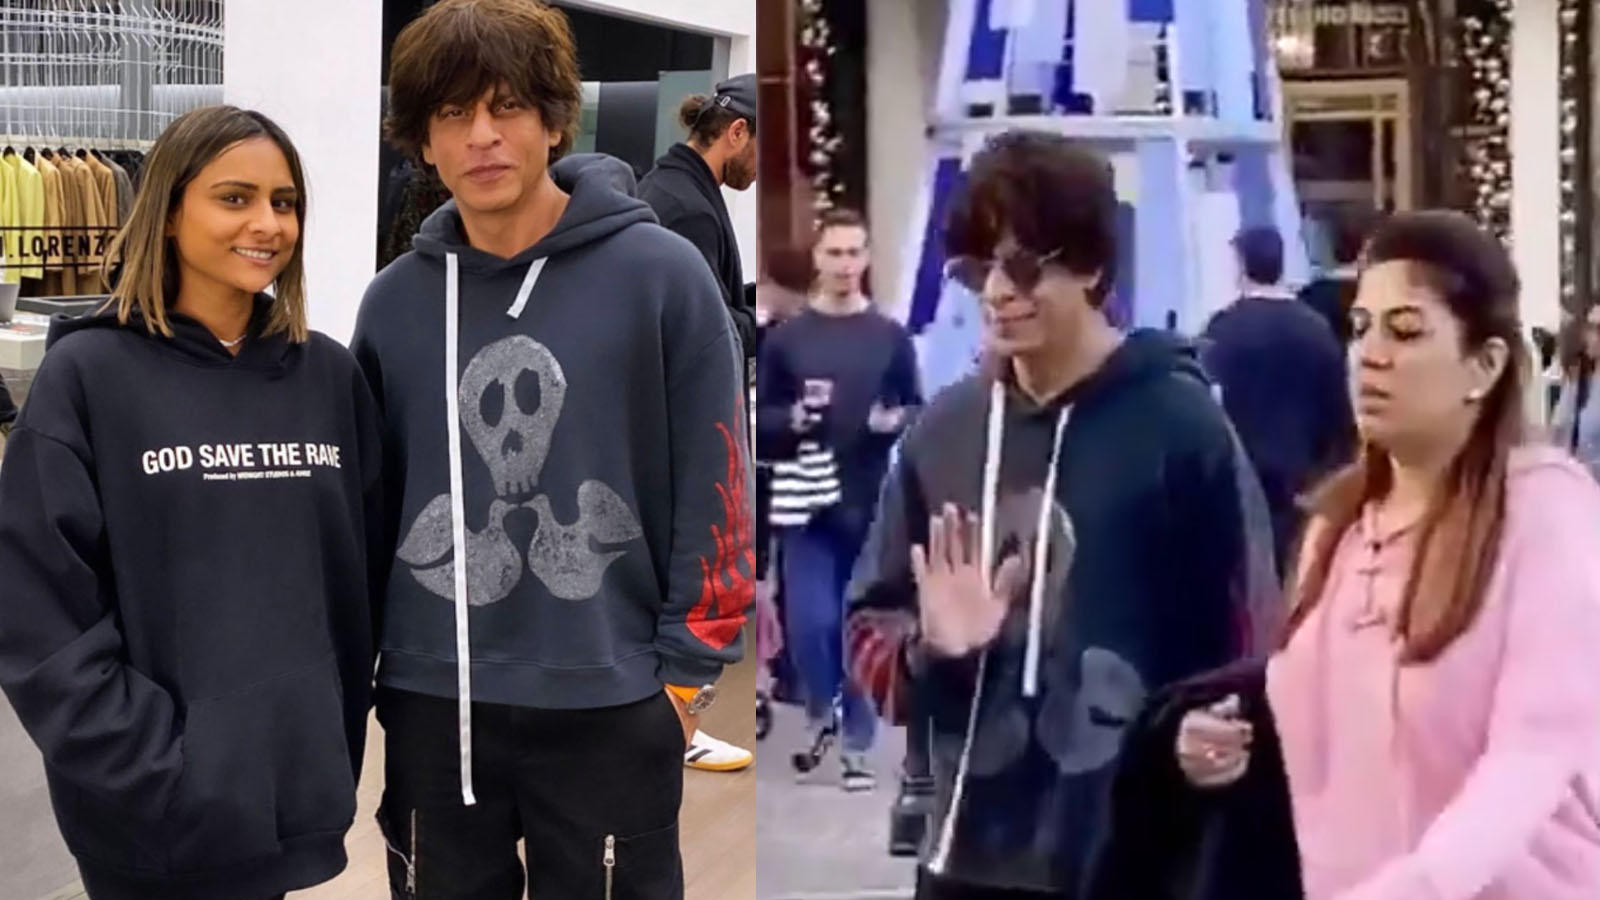 shah-rukh-khan-gets-captured-taking-a-leisure-stroll-on-busy-streets-of-los-angeles-his-pic-with-fan-girl-also-goes-viral